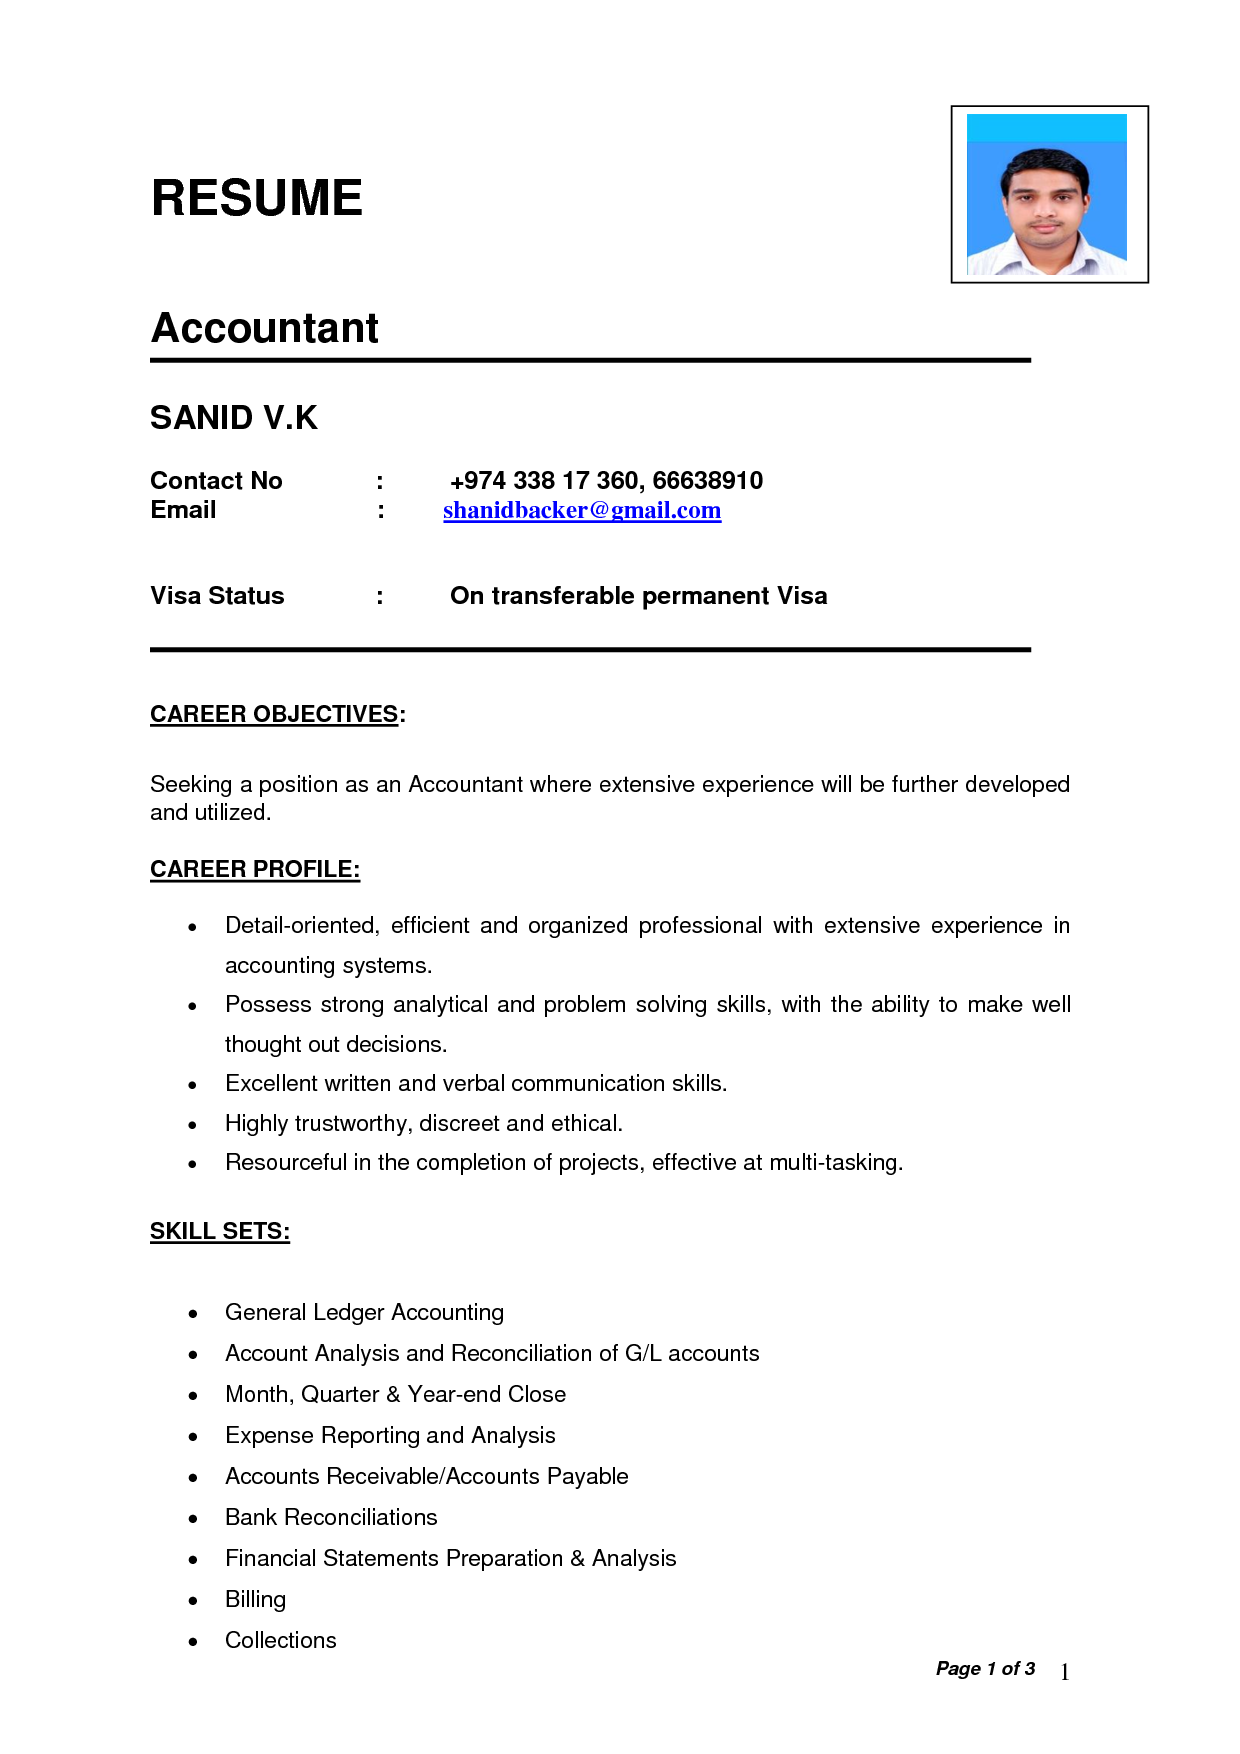 India Resume Template Word Accountant Resume Basic Resume